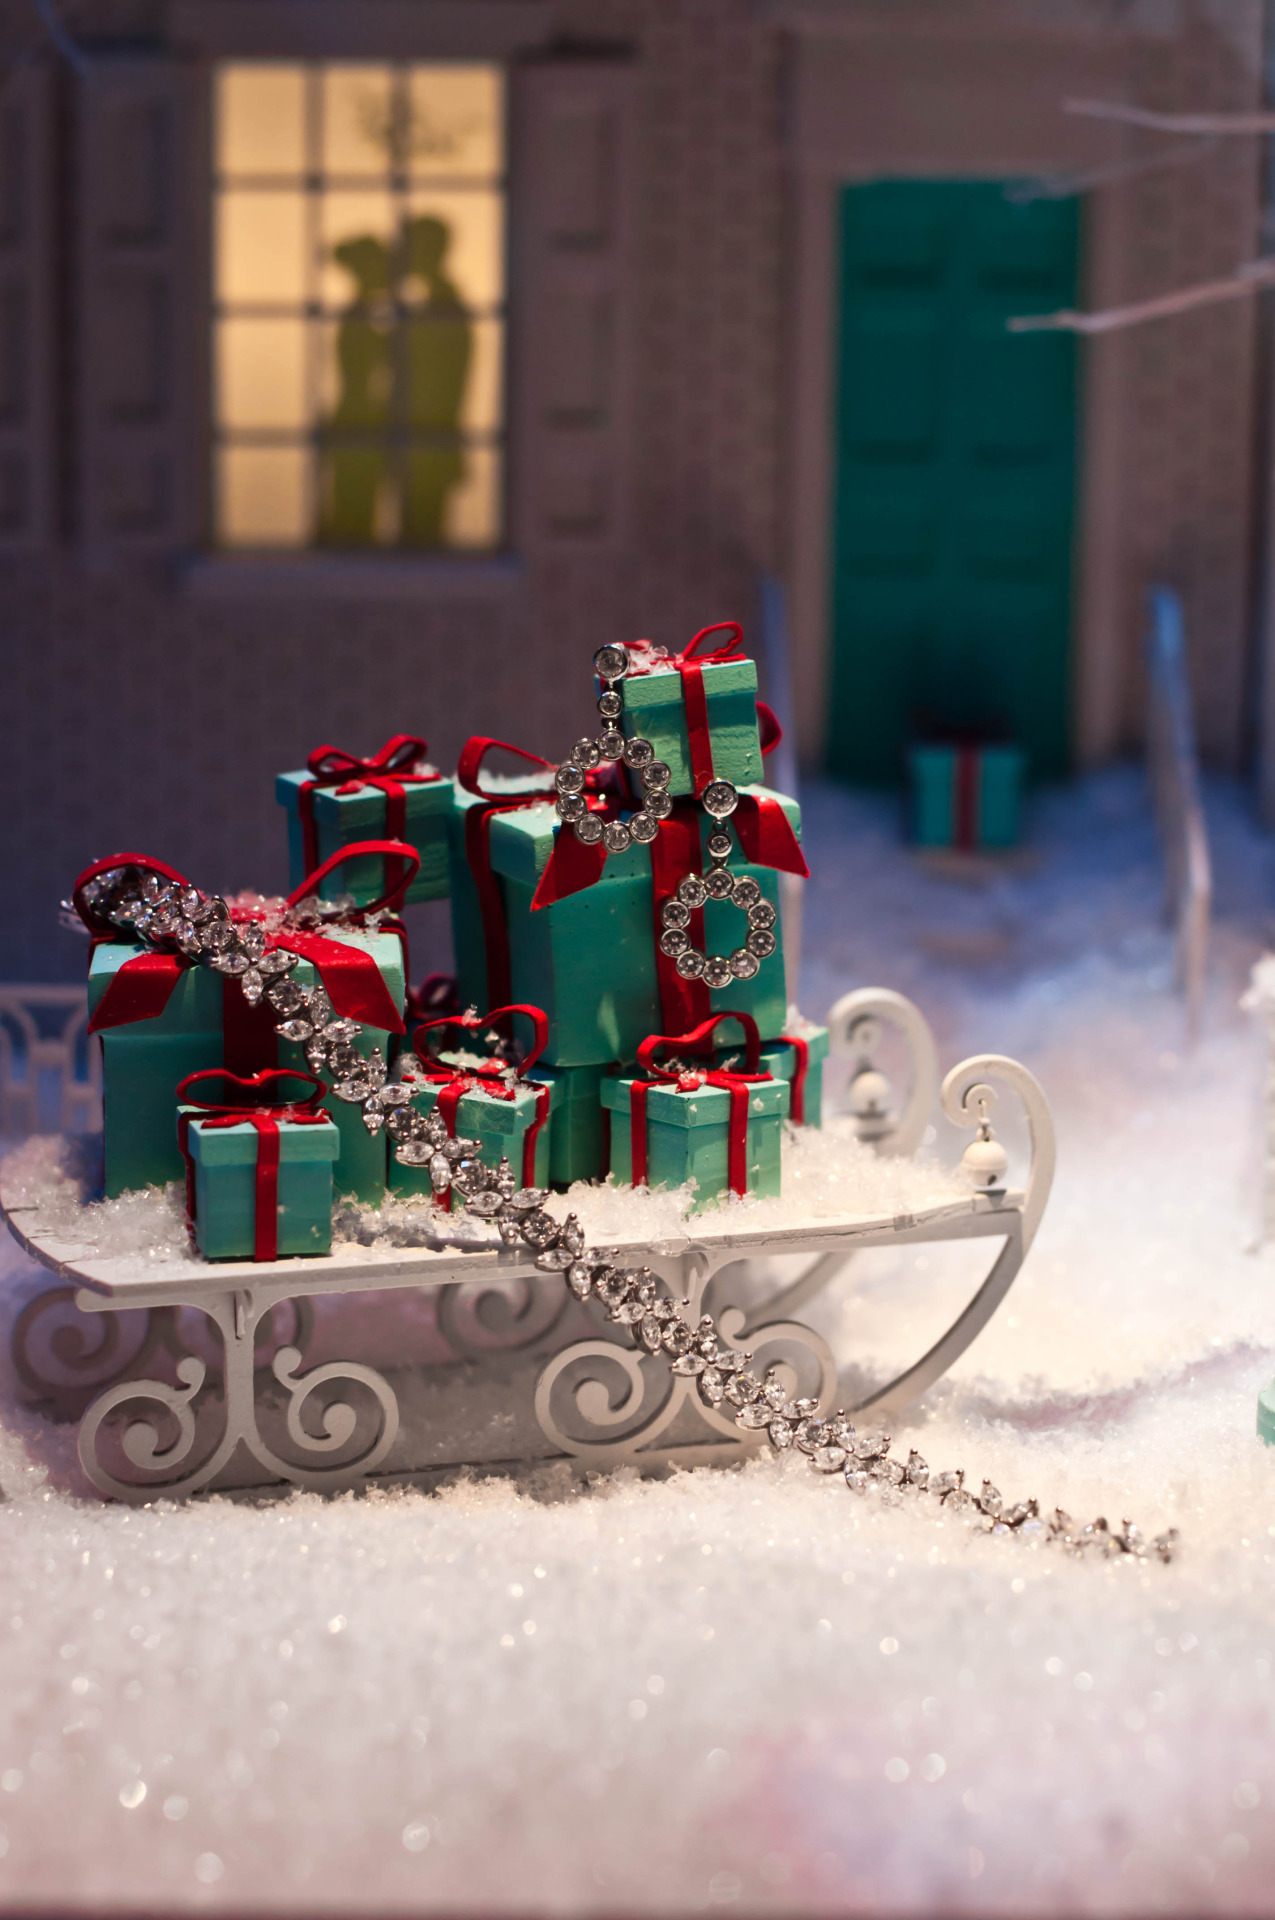 sleigh fun winter snow christmas presents gifts love house